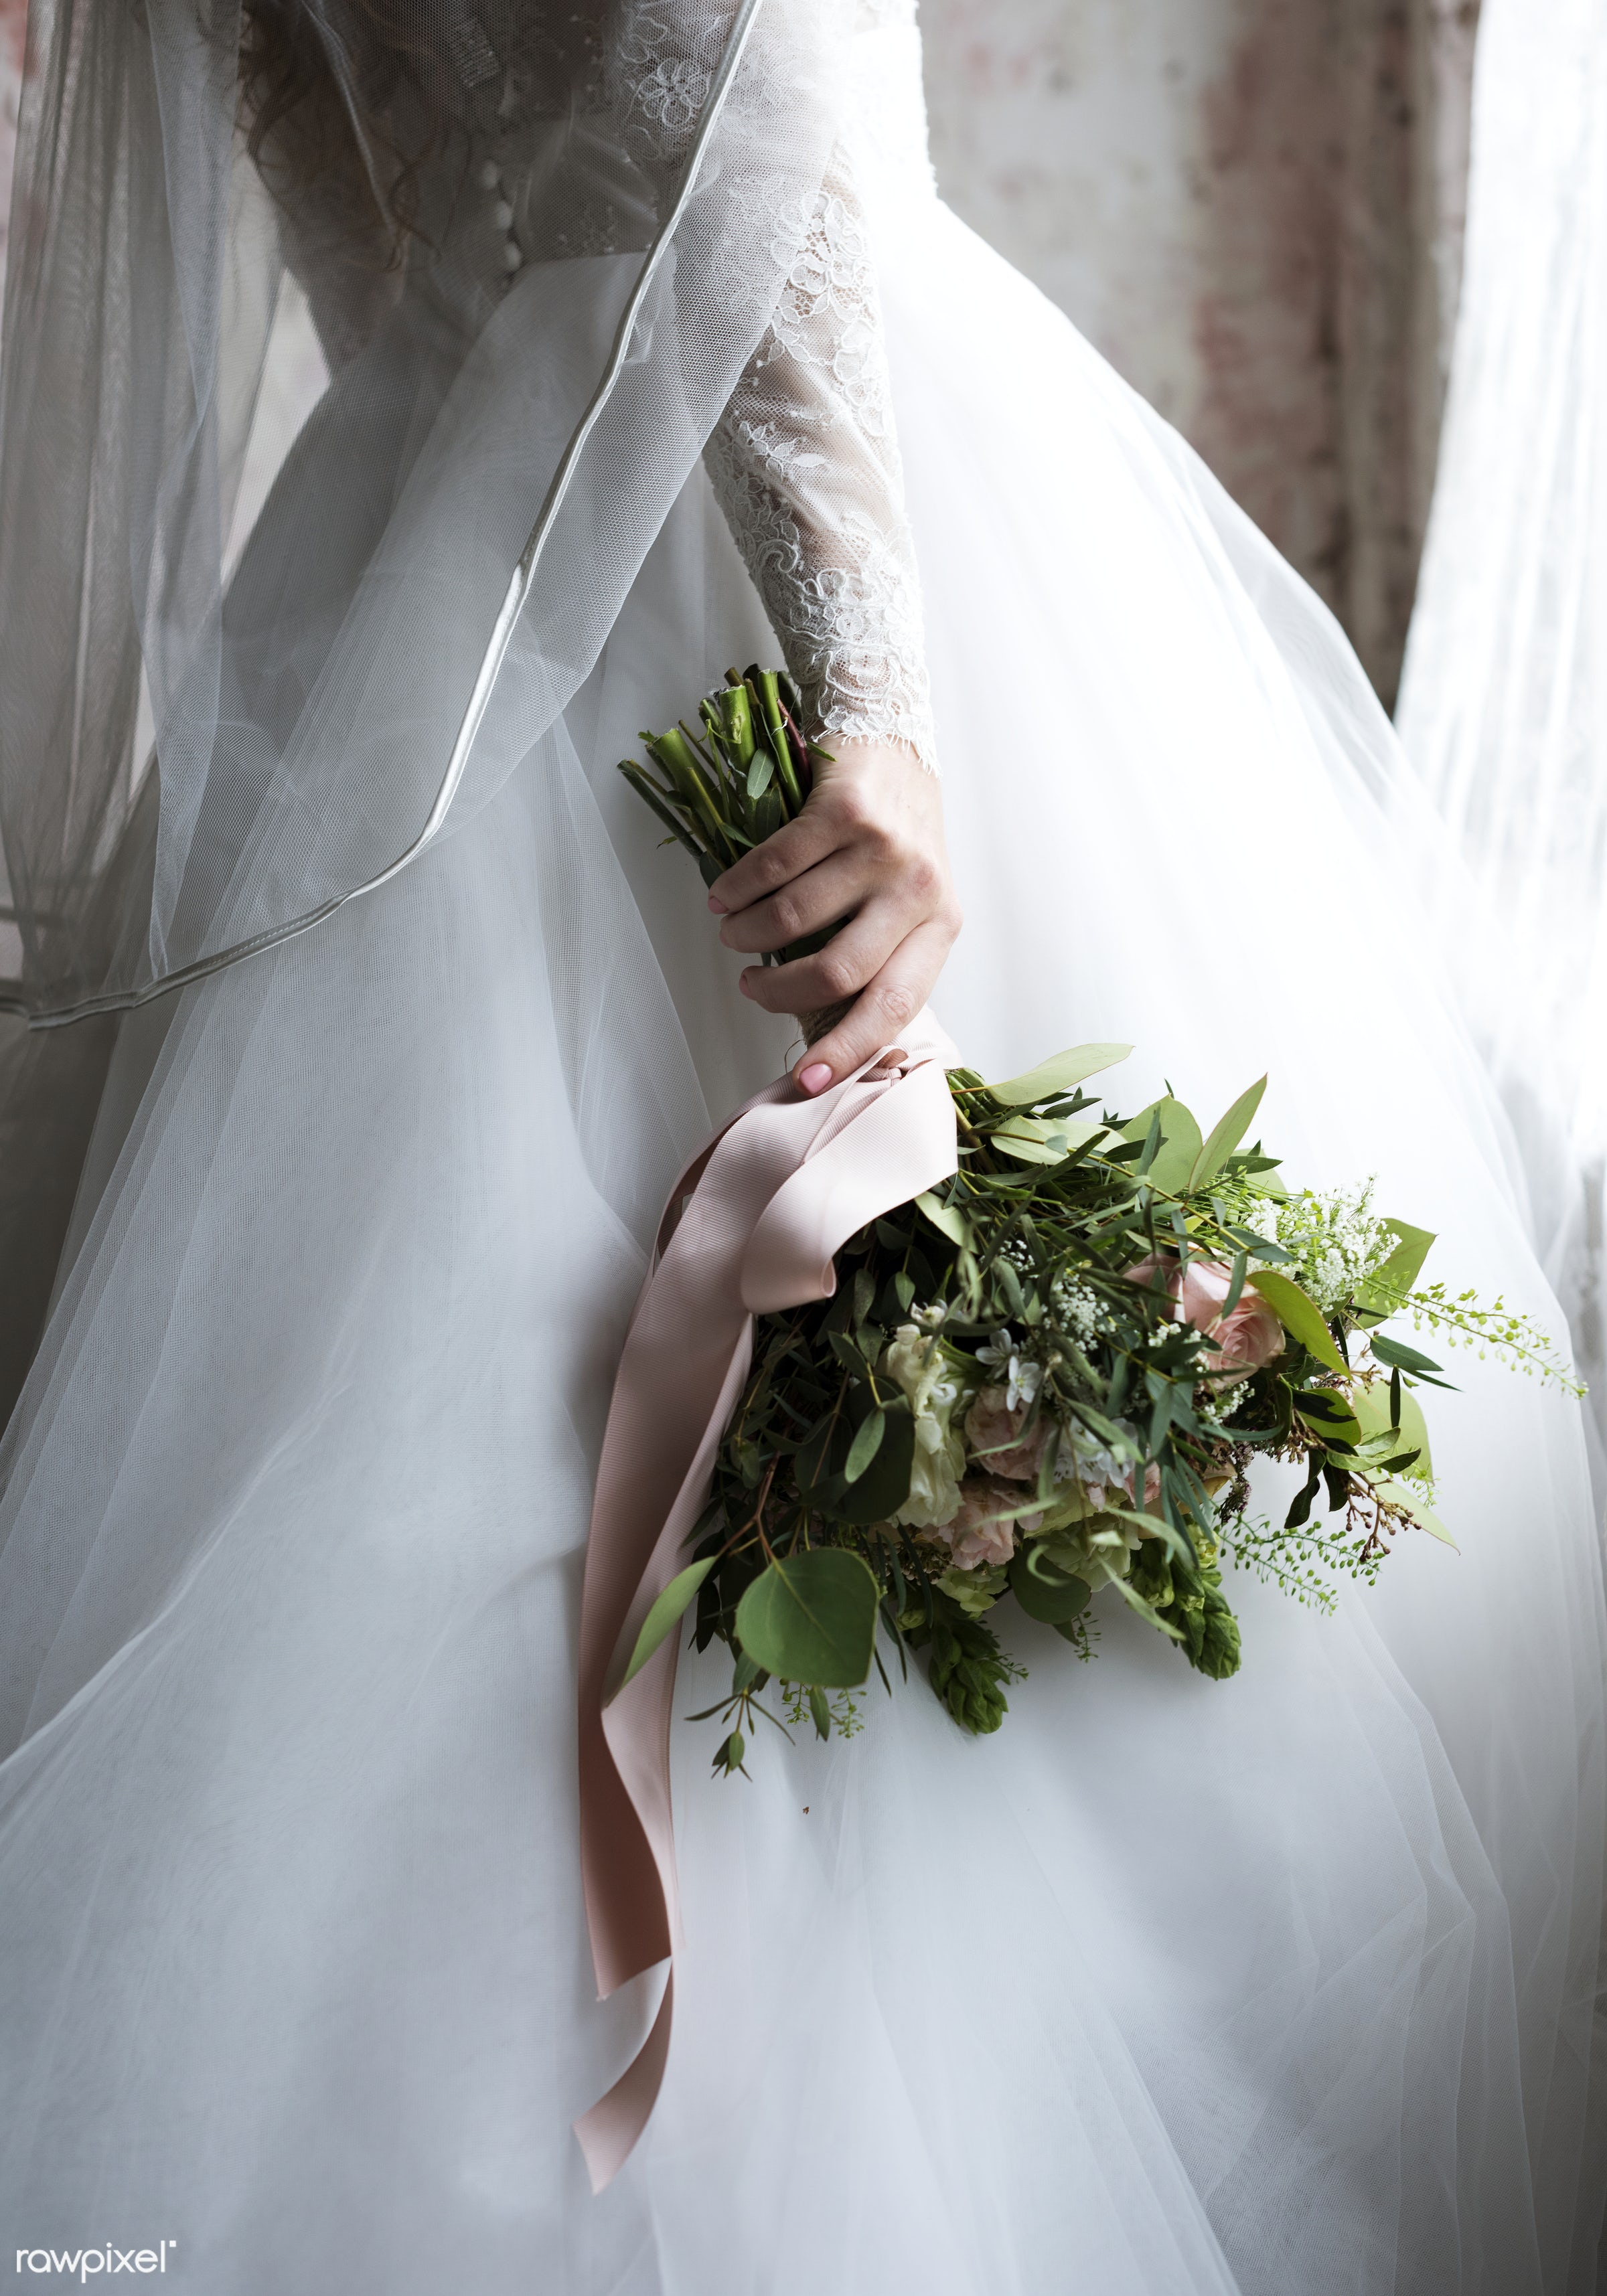 Attractive Beautiful Bride Holding Flowers Bouquet - wedding, bride, woman, bouquet, adult, attractive, beautiful, bridal,...